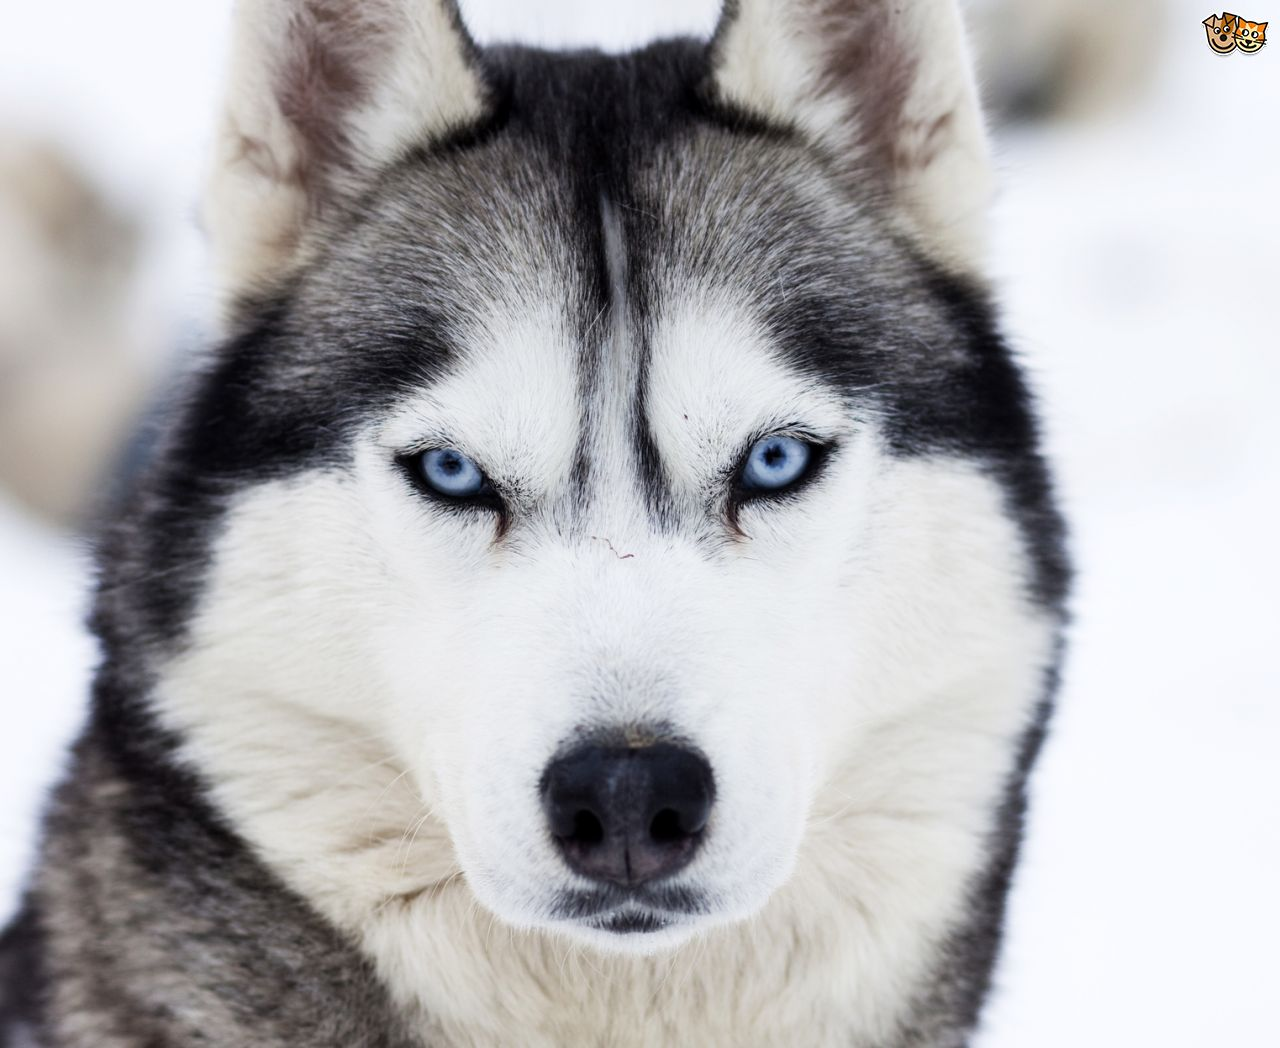 Images Of Husky Dogs: Dogs And Puppies Wiki